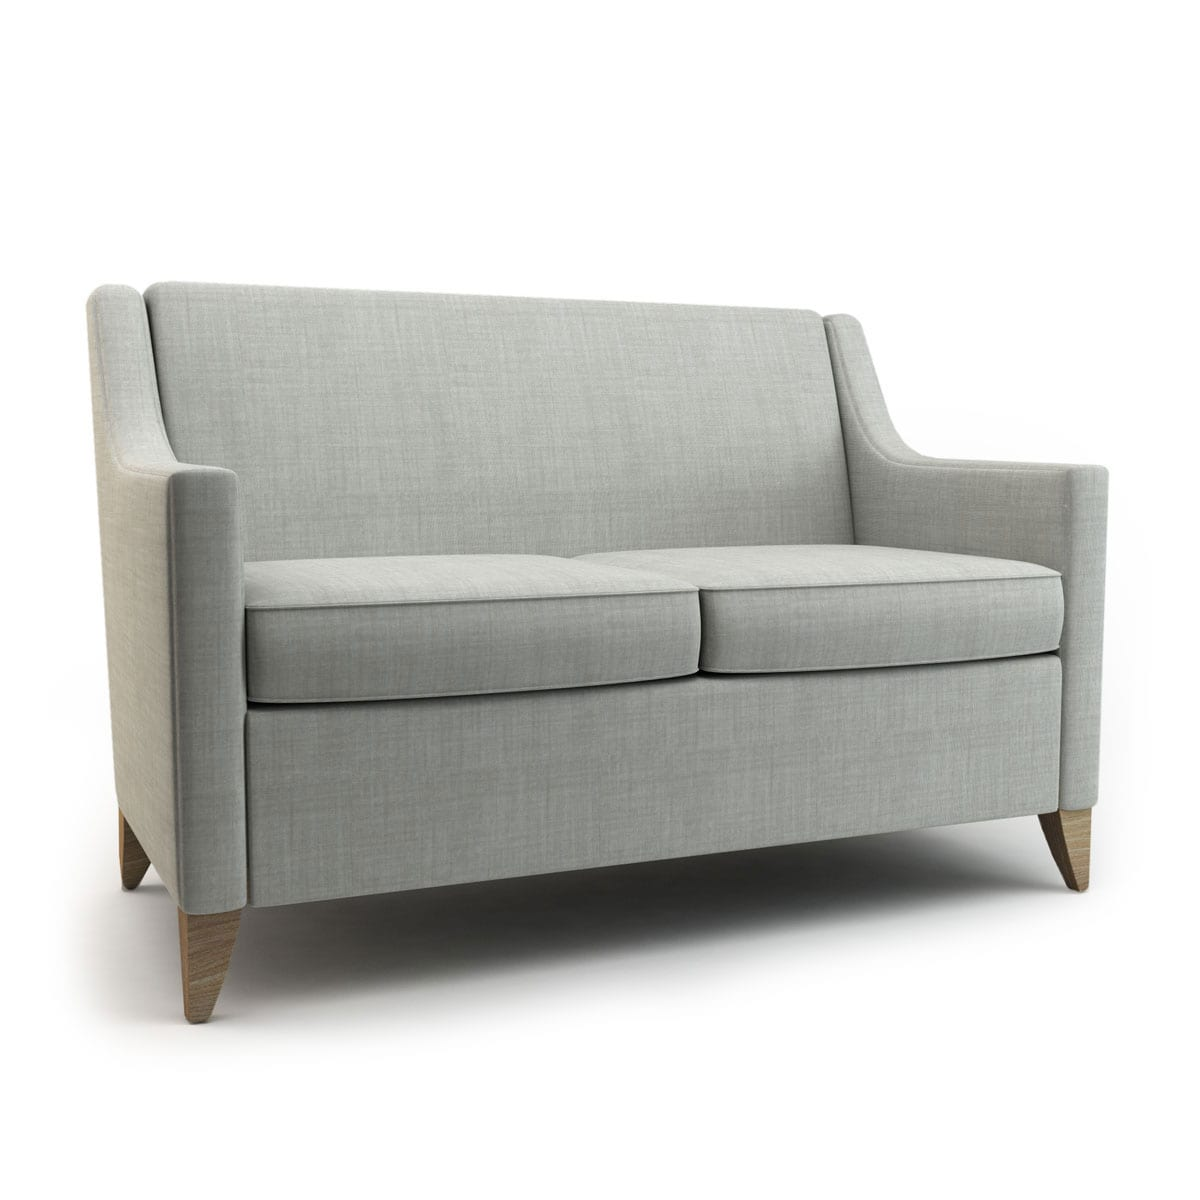 2nd hand sectional sofa flat cushions toledo stylus made to order sofas built - thesofa